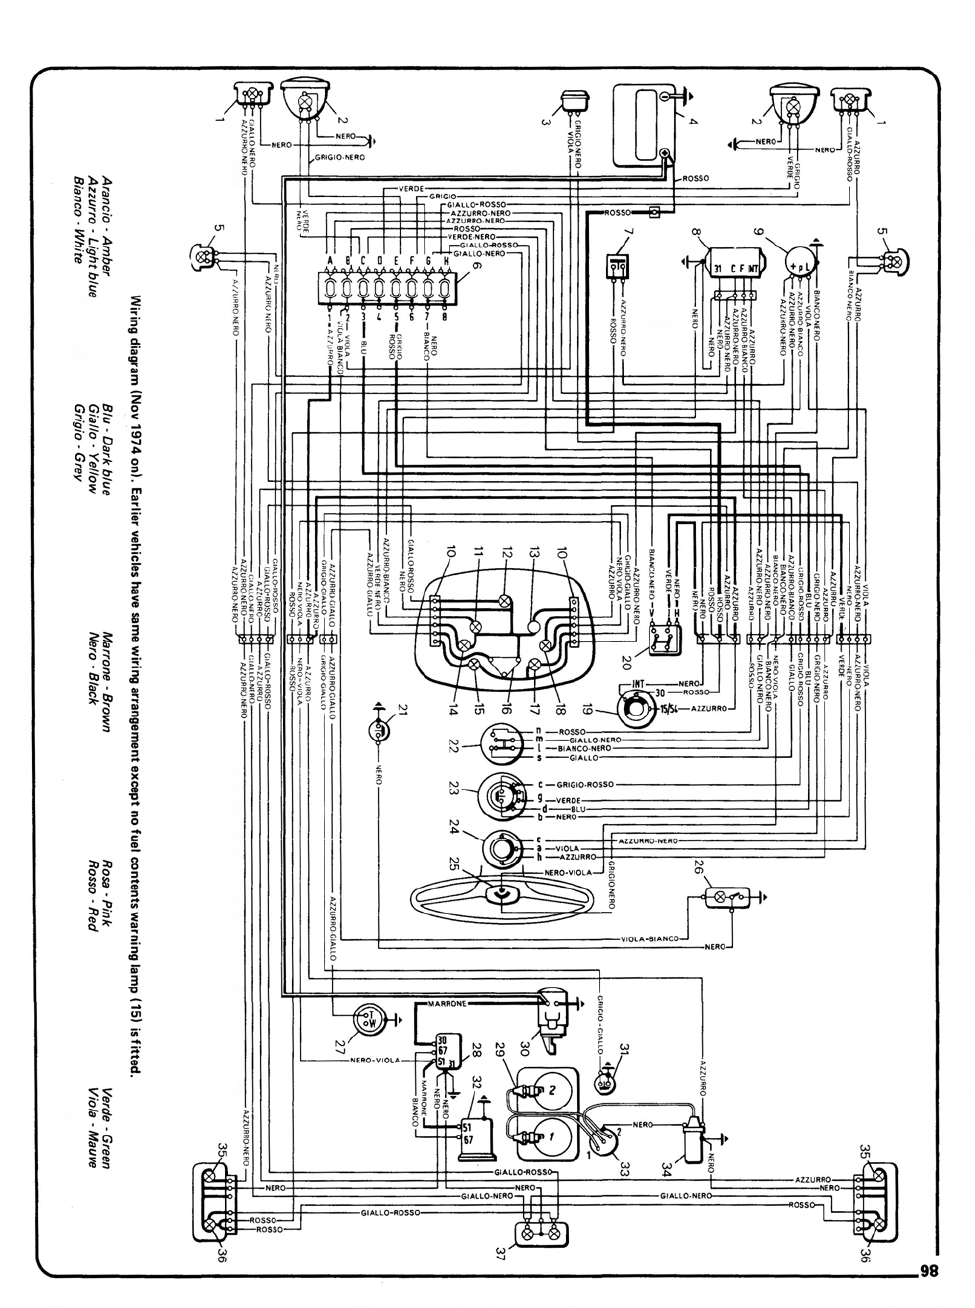 fiat grande punto wiring diagram manual